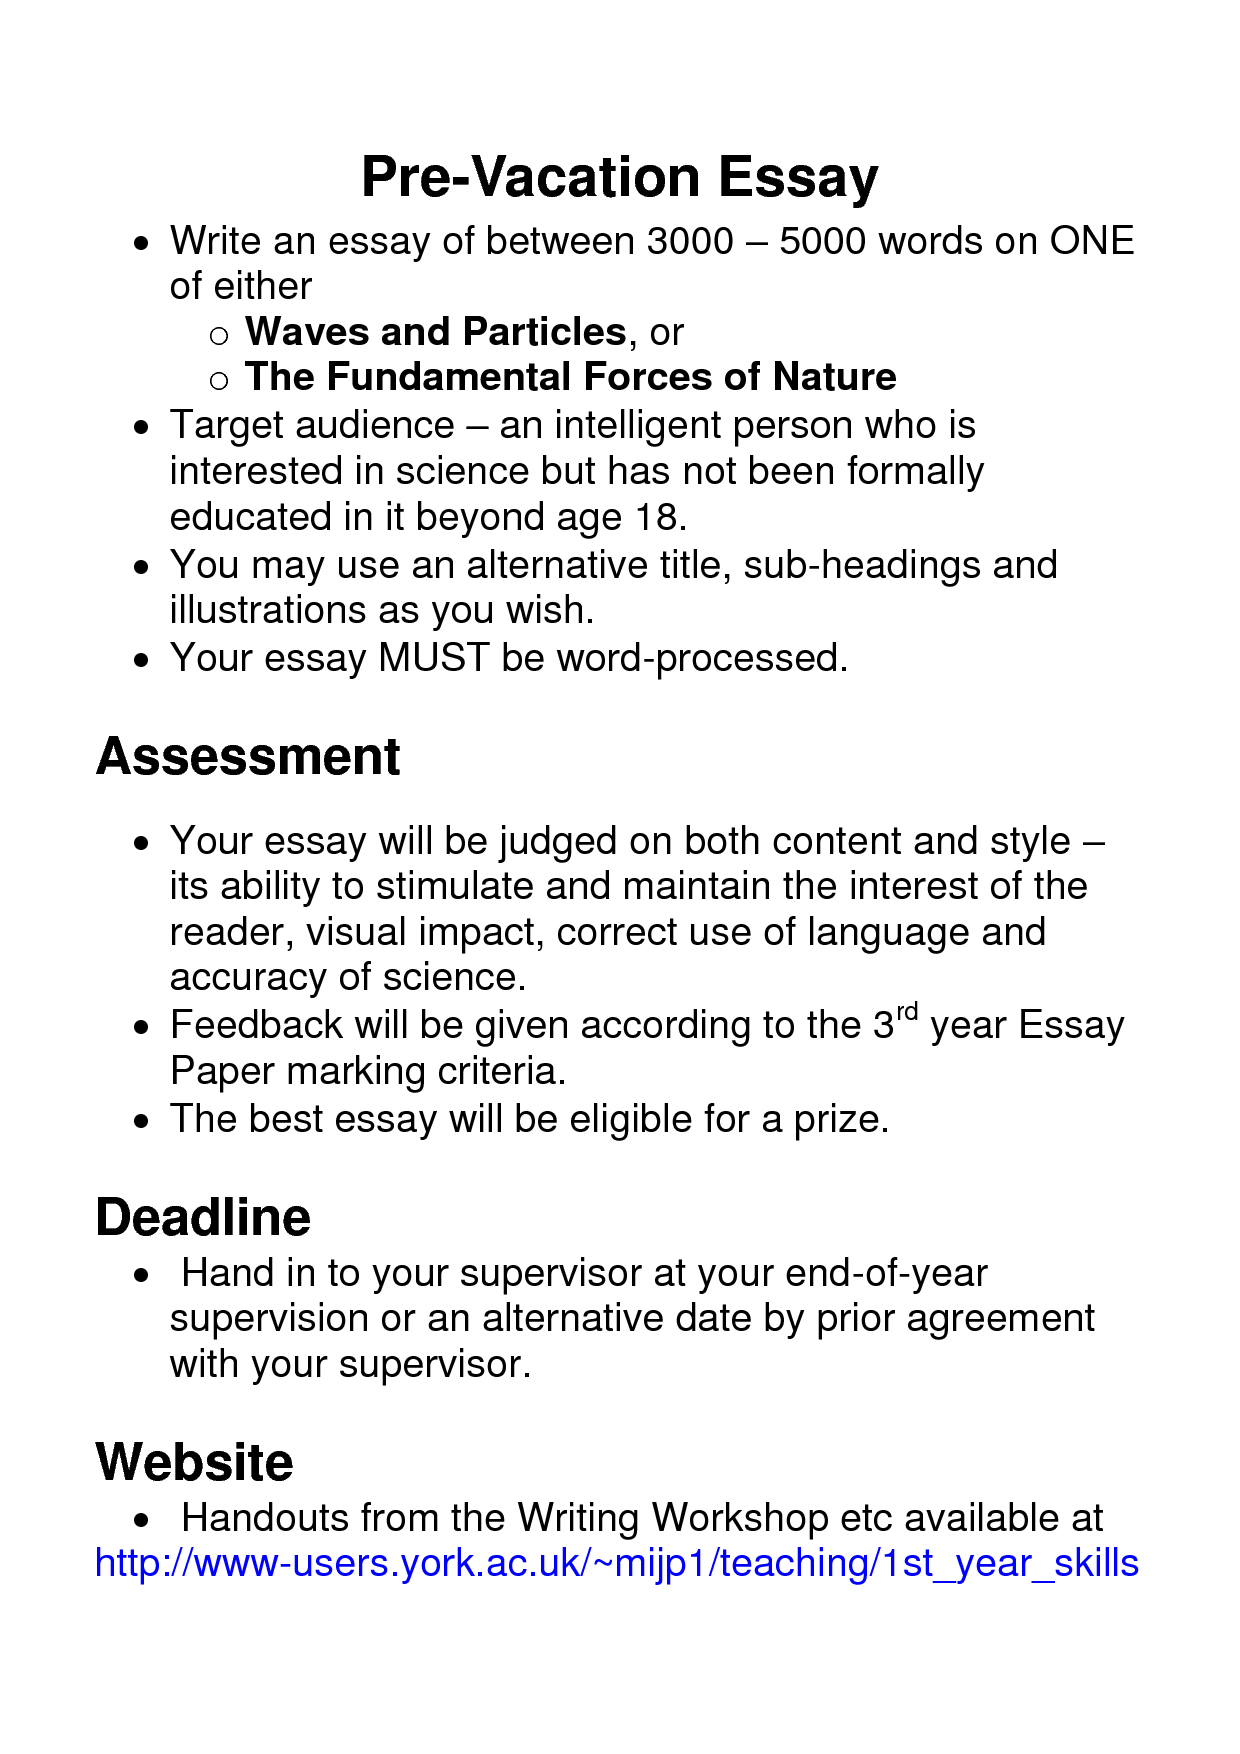 005 Essay Example Cywfhkqpjw Do Surprising My Write Generator Free Uk Reviews Now Full